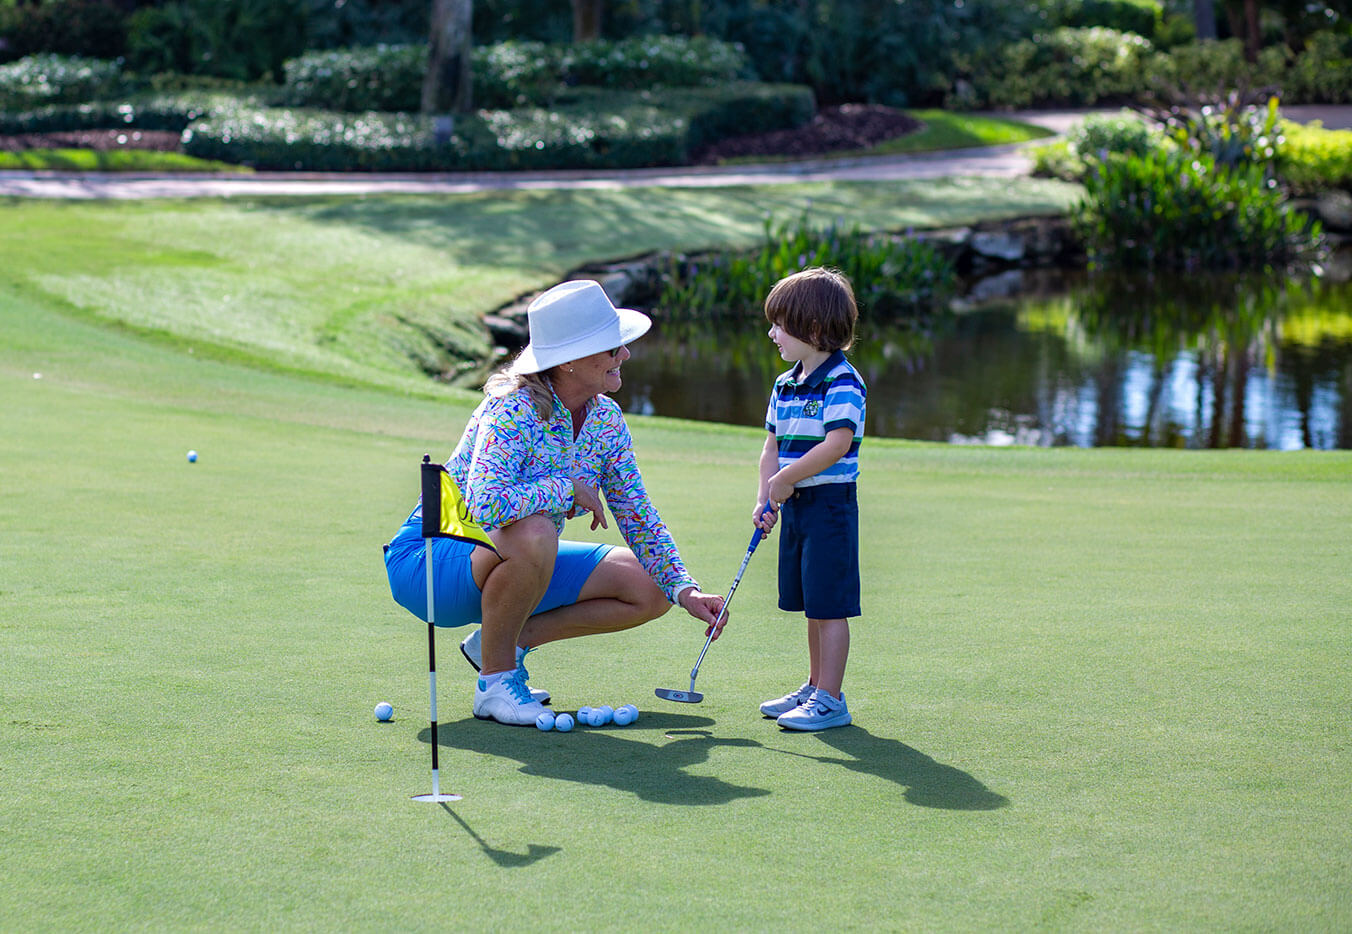 Junior Golf at Addison Reserve in Florida